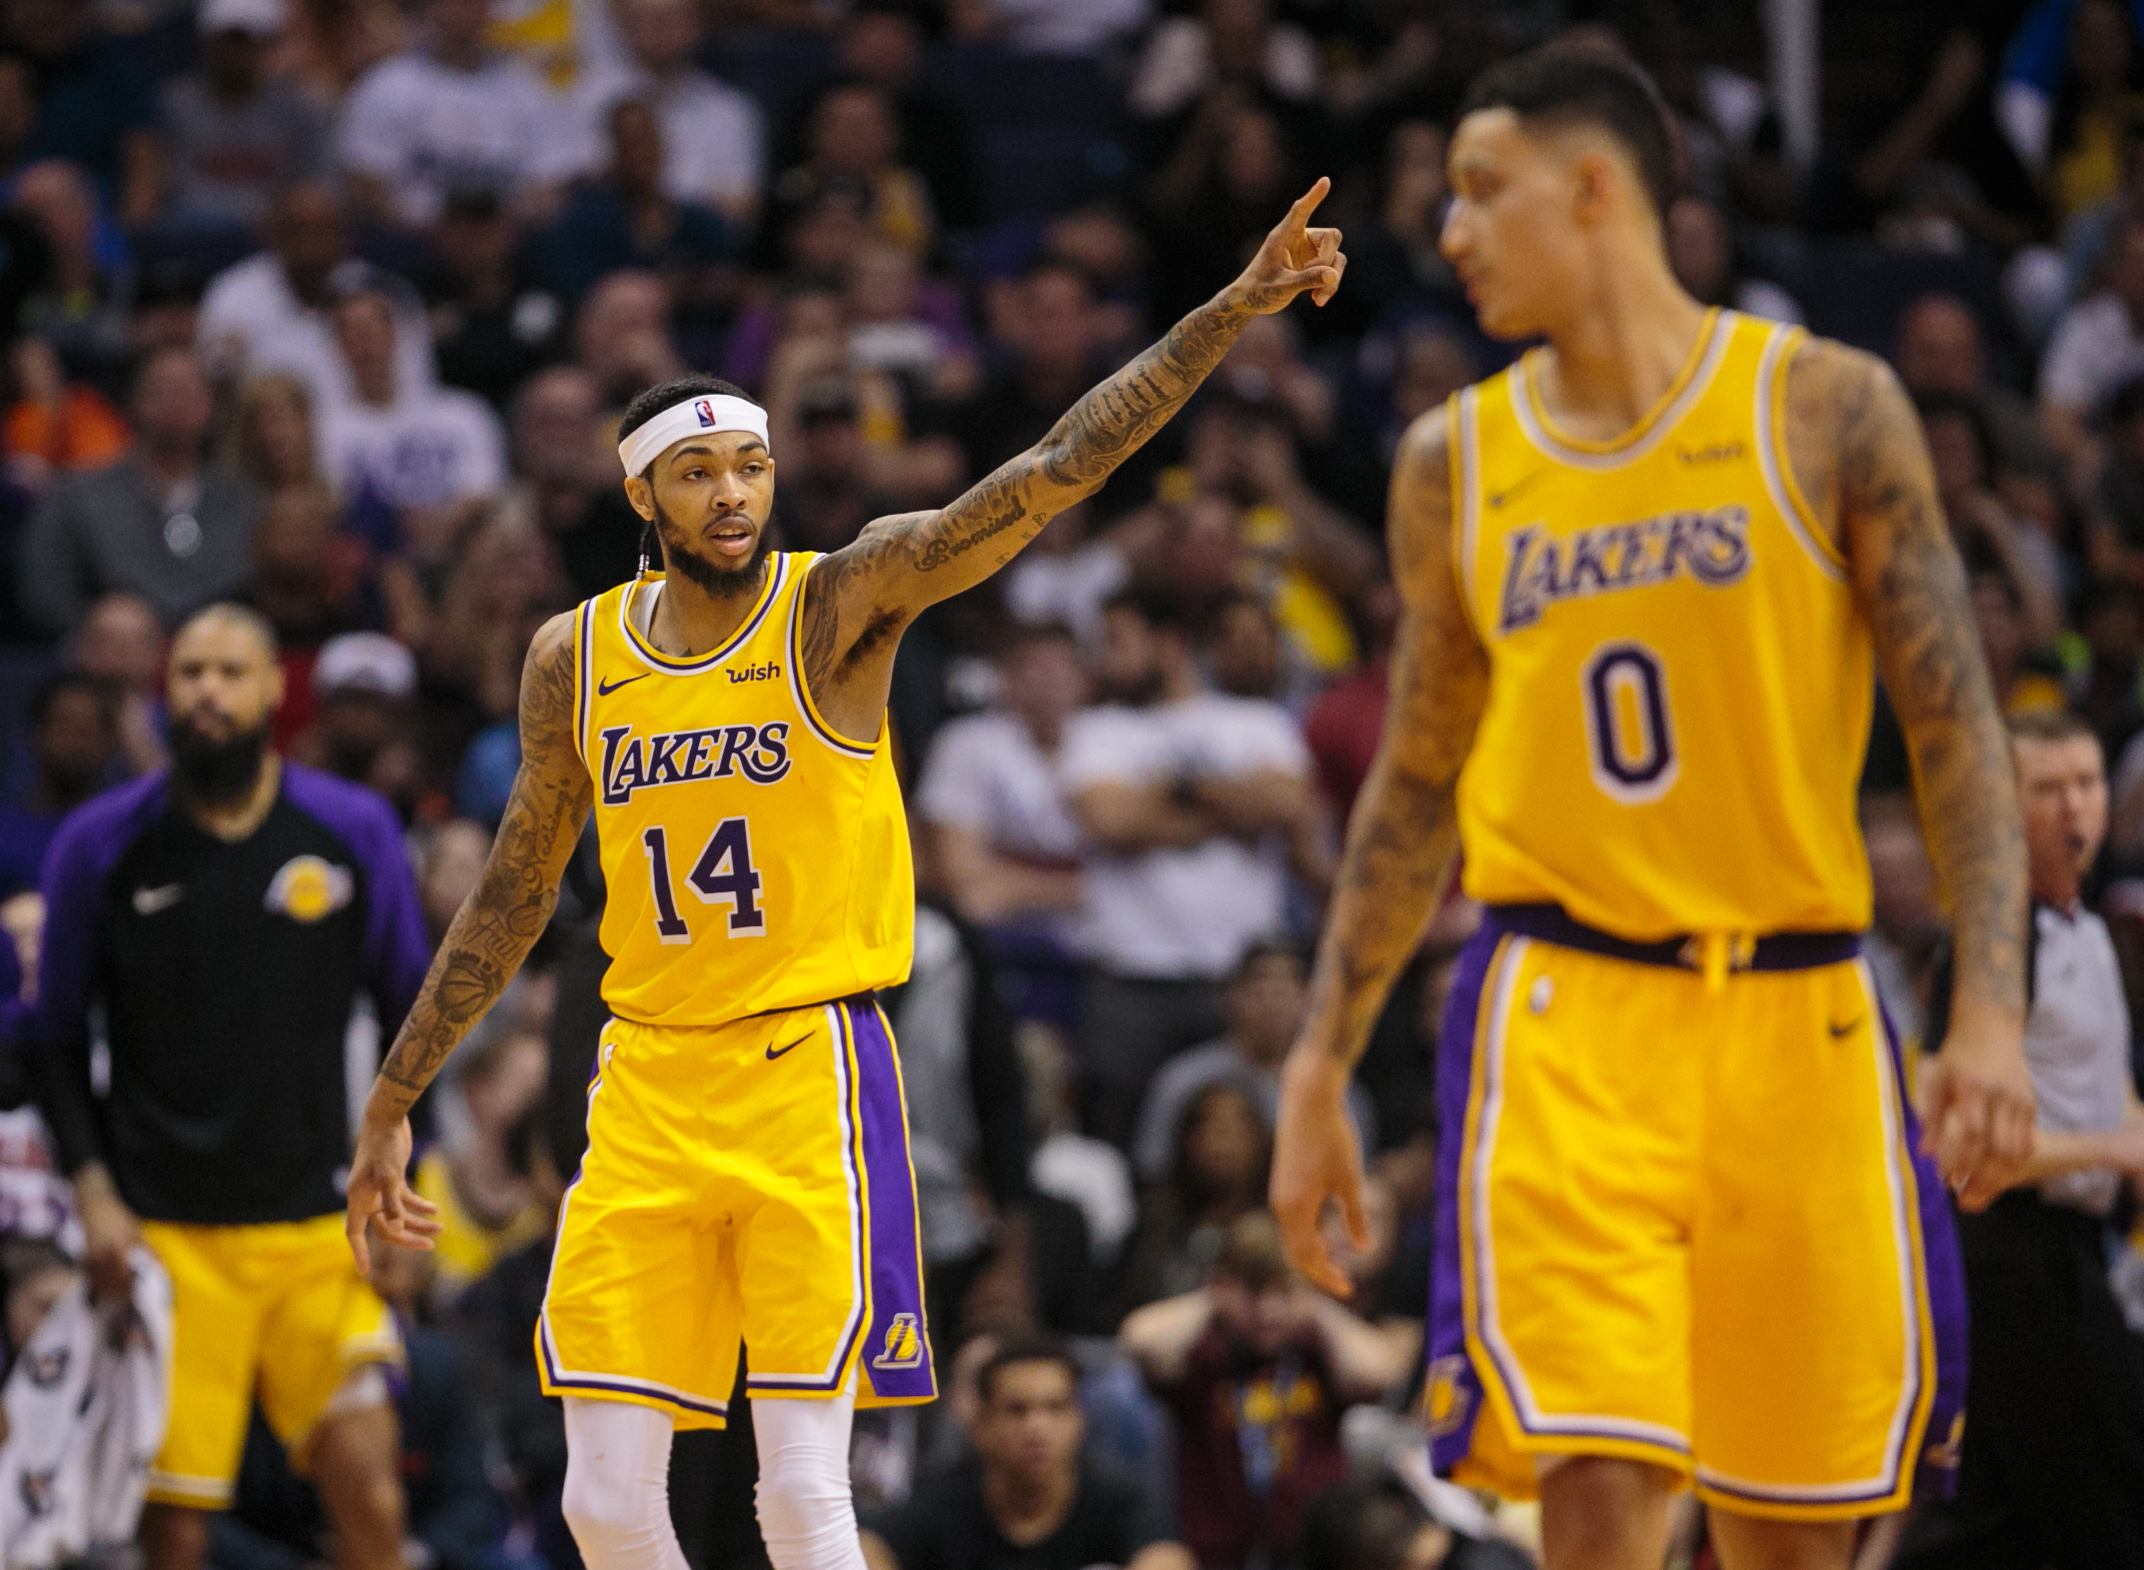 Watch: Brandon Ingram throws major shade at LeBron James in Instagram live stream